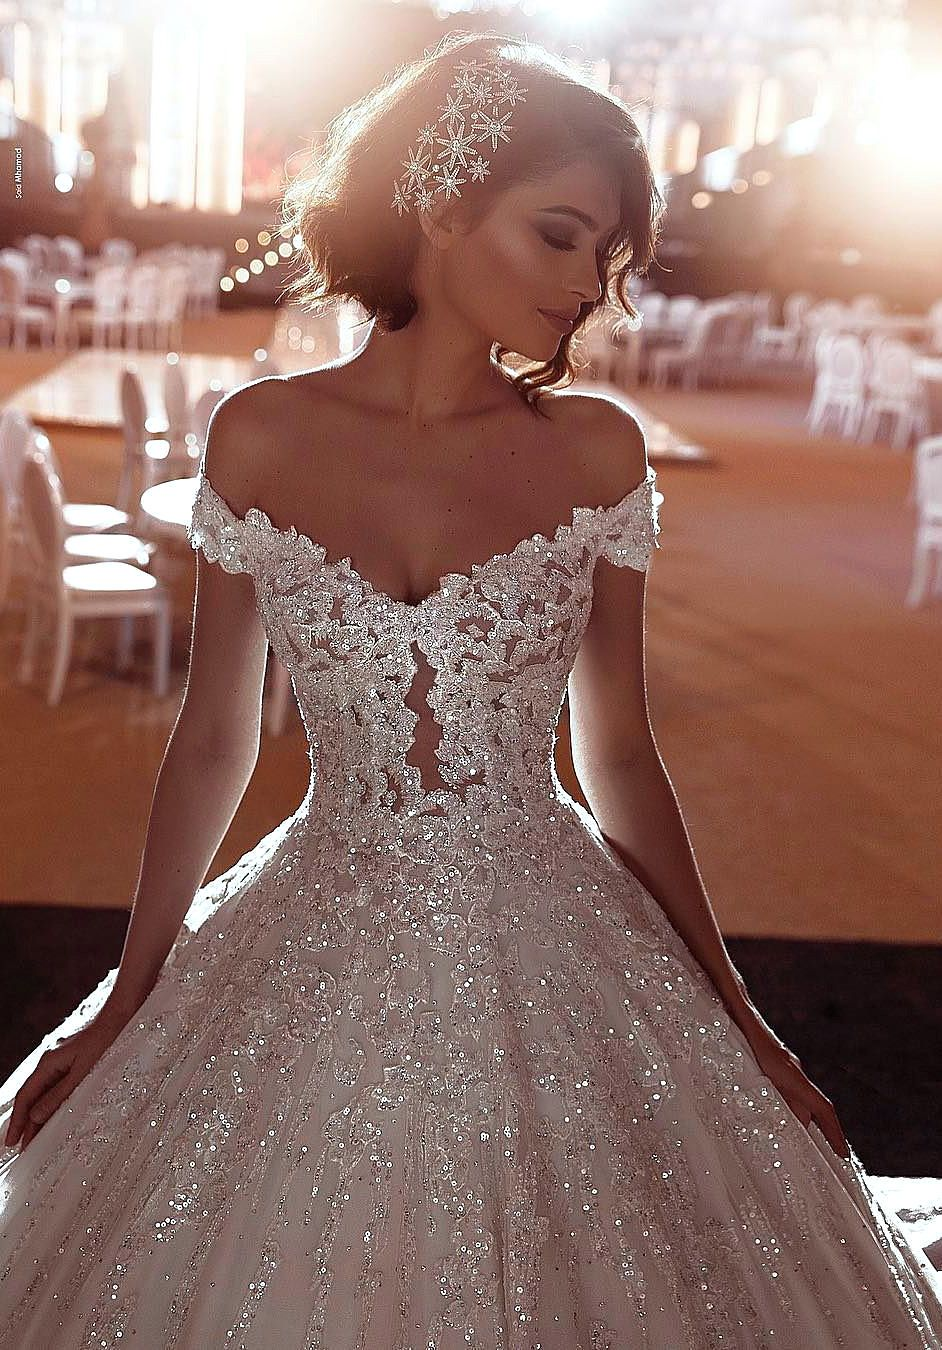 49 Wedding Dresses Different Decoraitons And Bride Hairstyles Ideas Page 24 Of 49 Womens Ideas Sparkle Wedding Dress Princess Wedding Dresses Ball Gowns Wedding [ 1350 x 942 Pixel ]